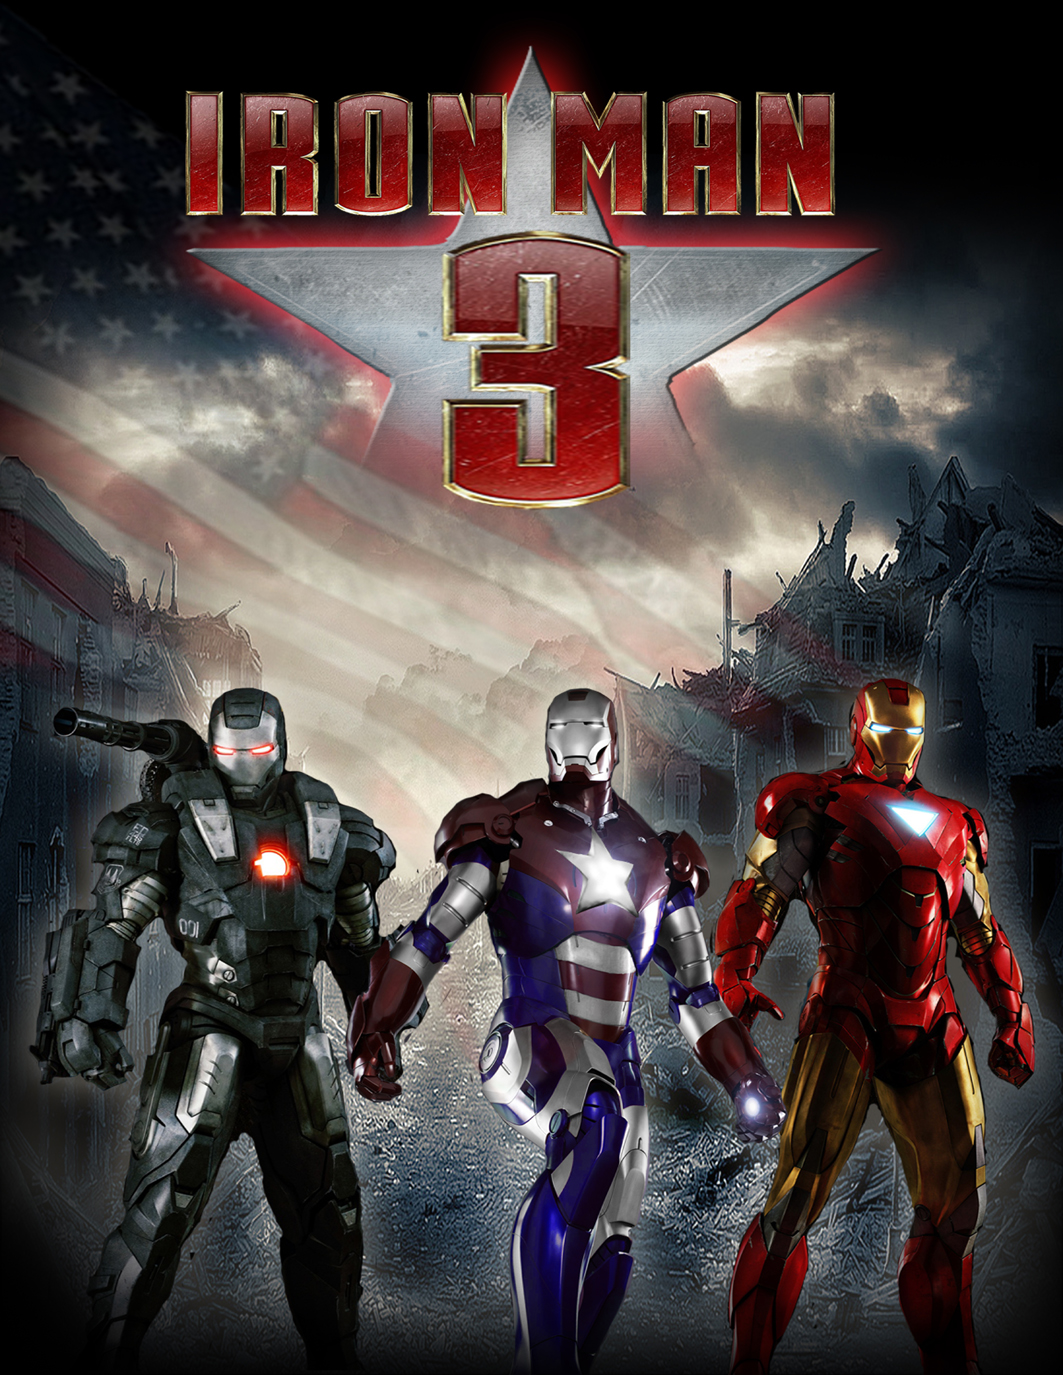 Ver Iron Man 3 (Ironman 3) (2013) Online